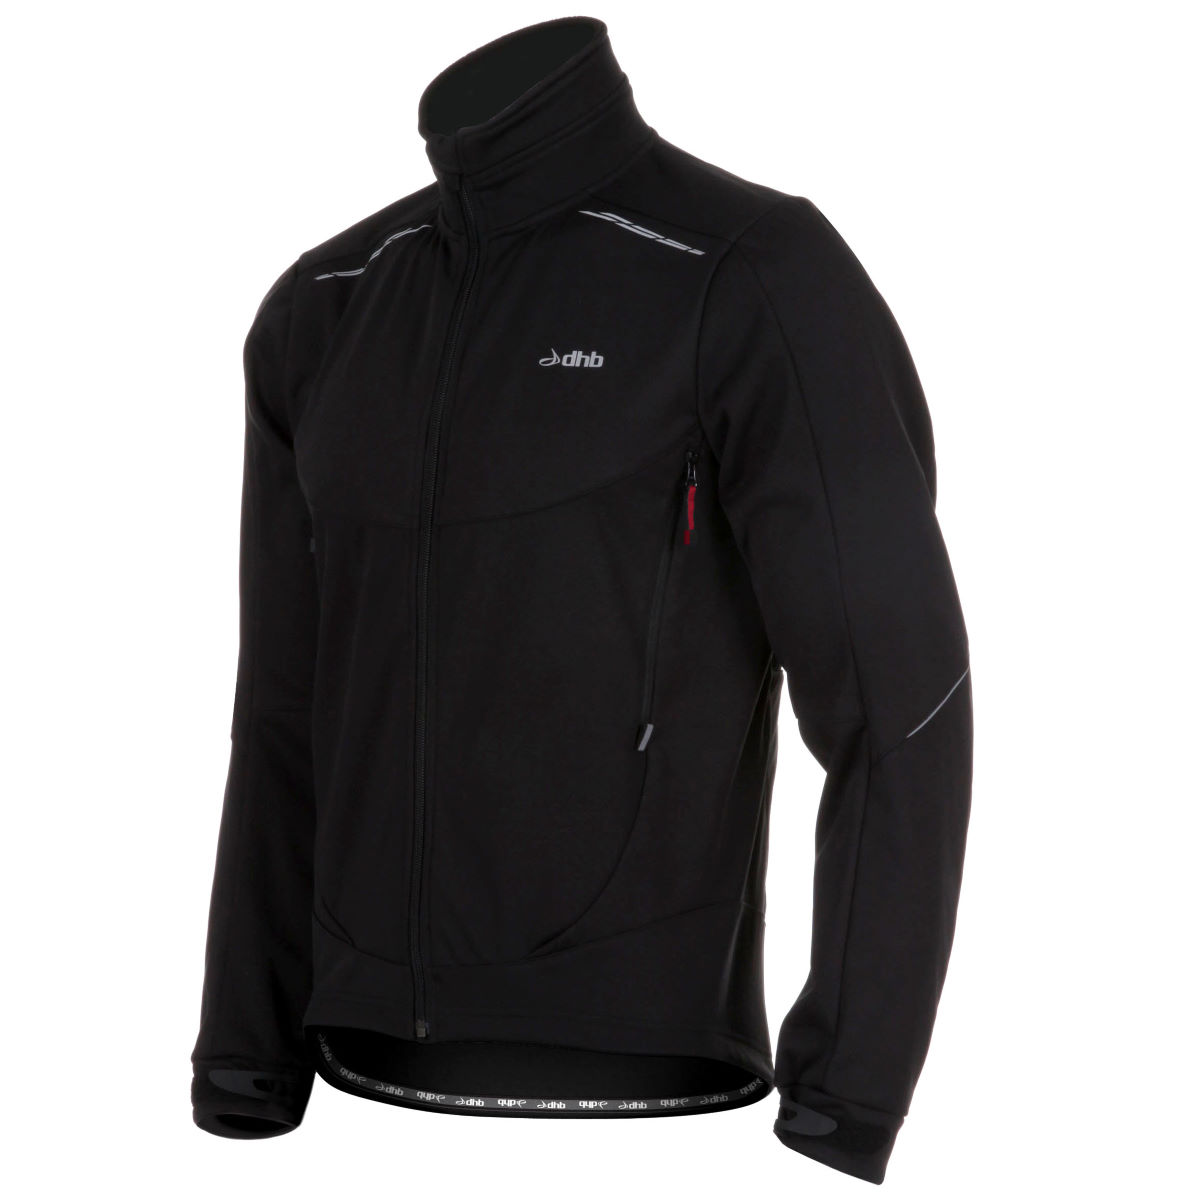 wiggle dhb windslam softshell jacket cycling windproof. Black Bedroom Furniture Sets. Home Design Ideas